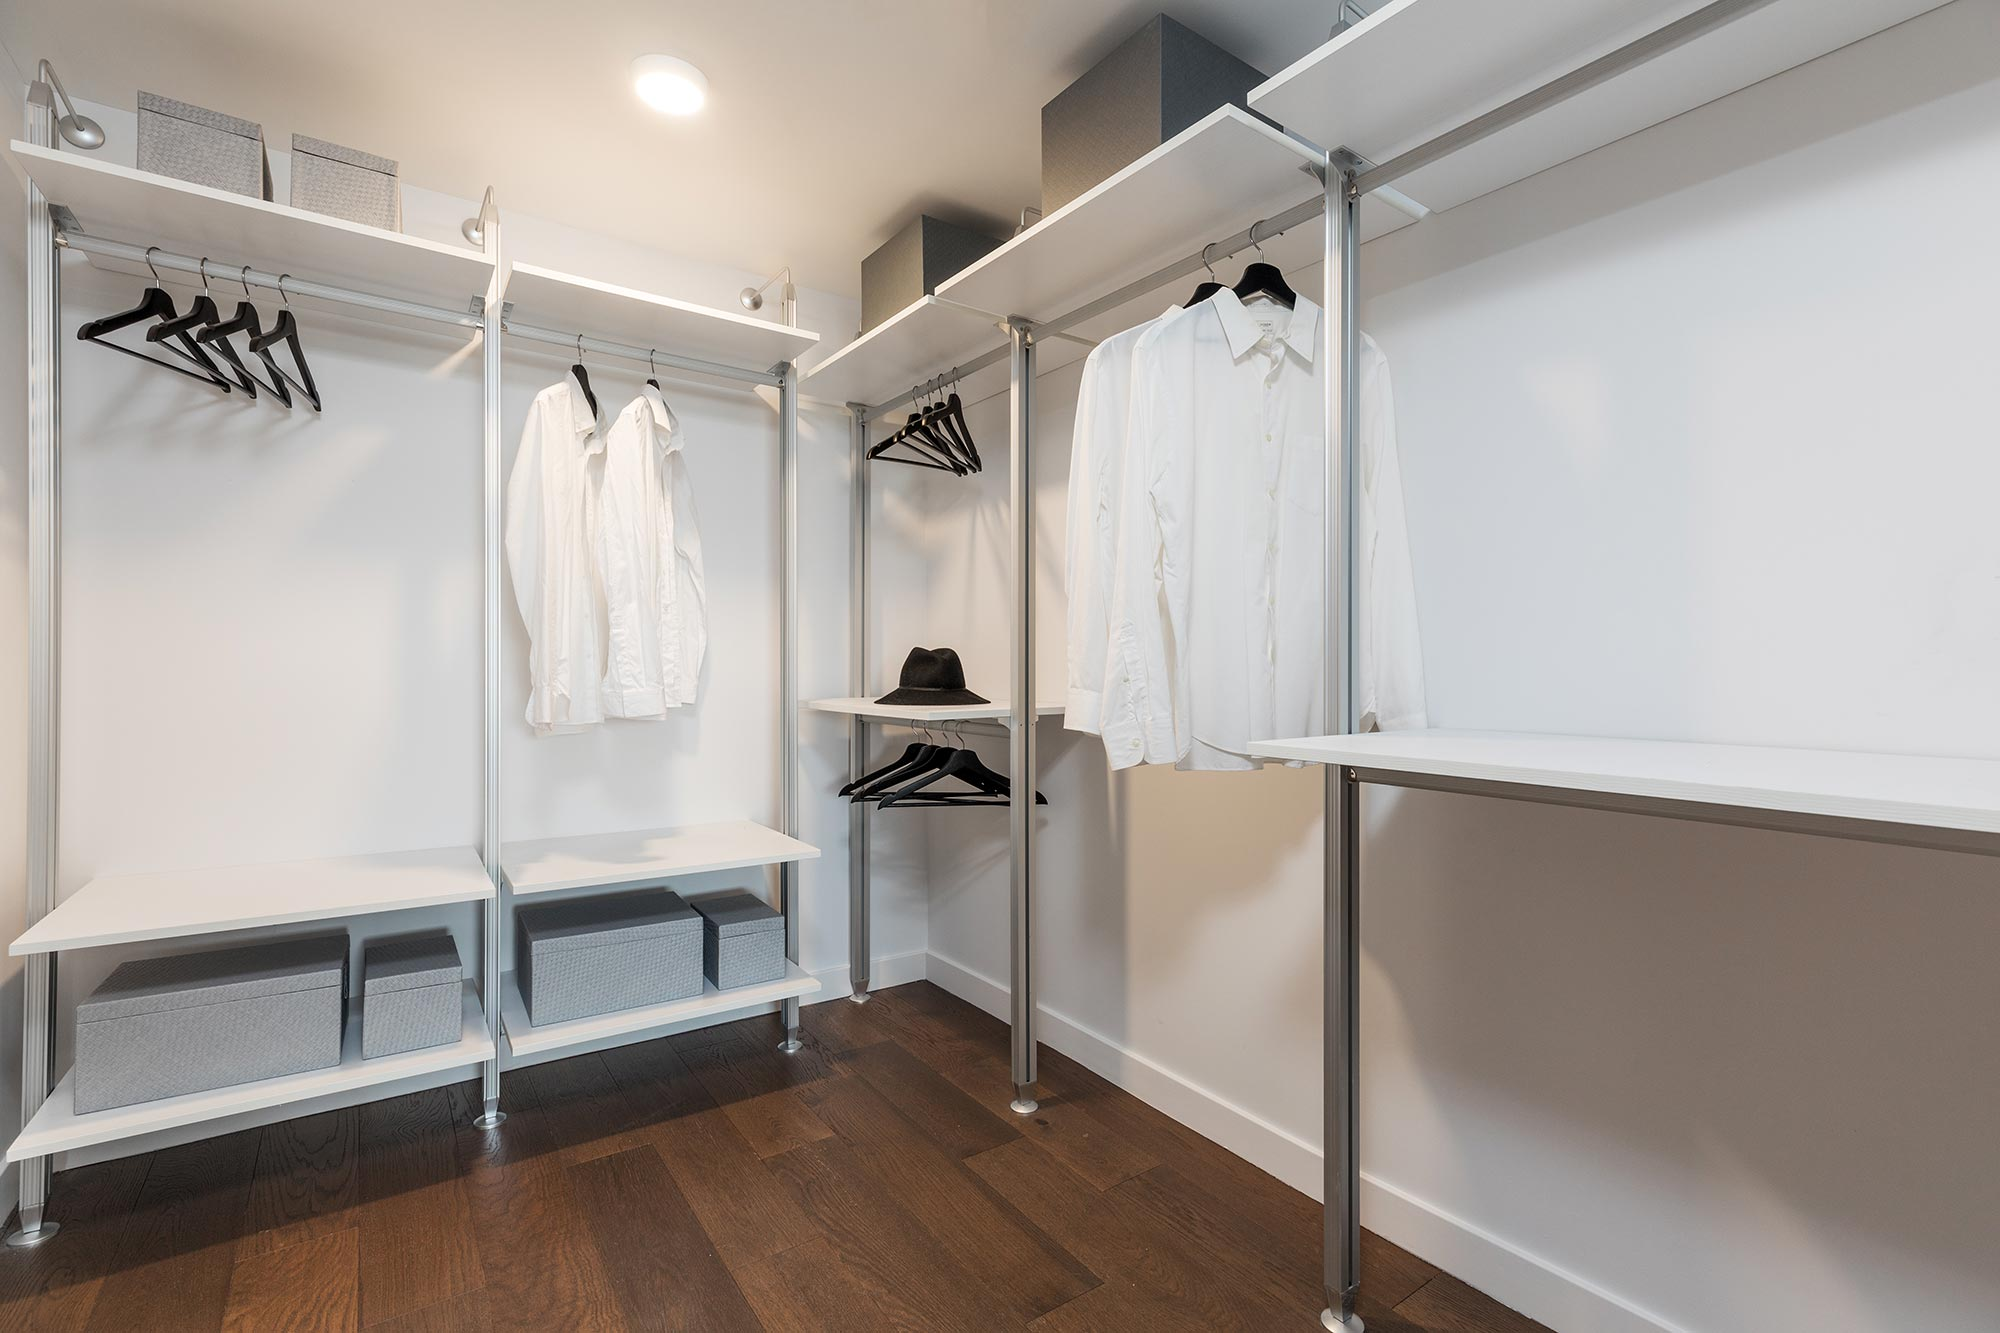 European-style closet build-outs